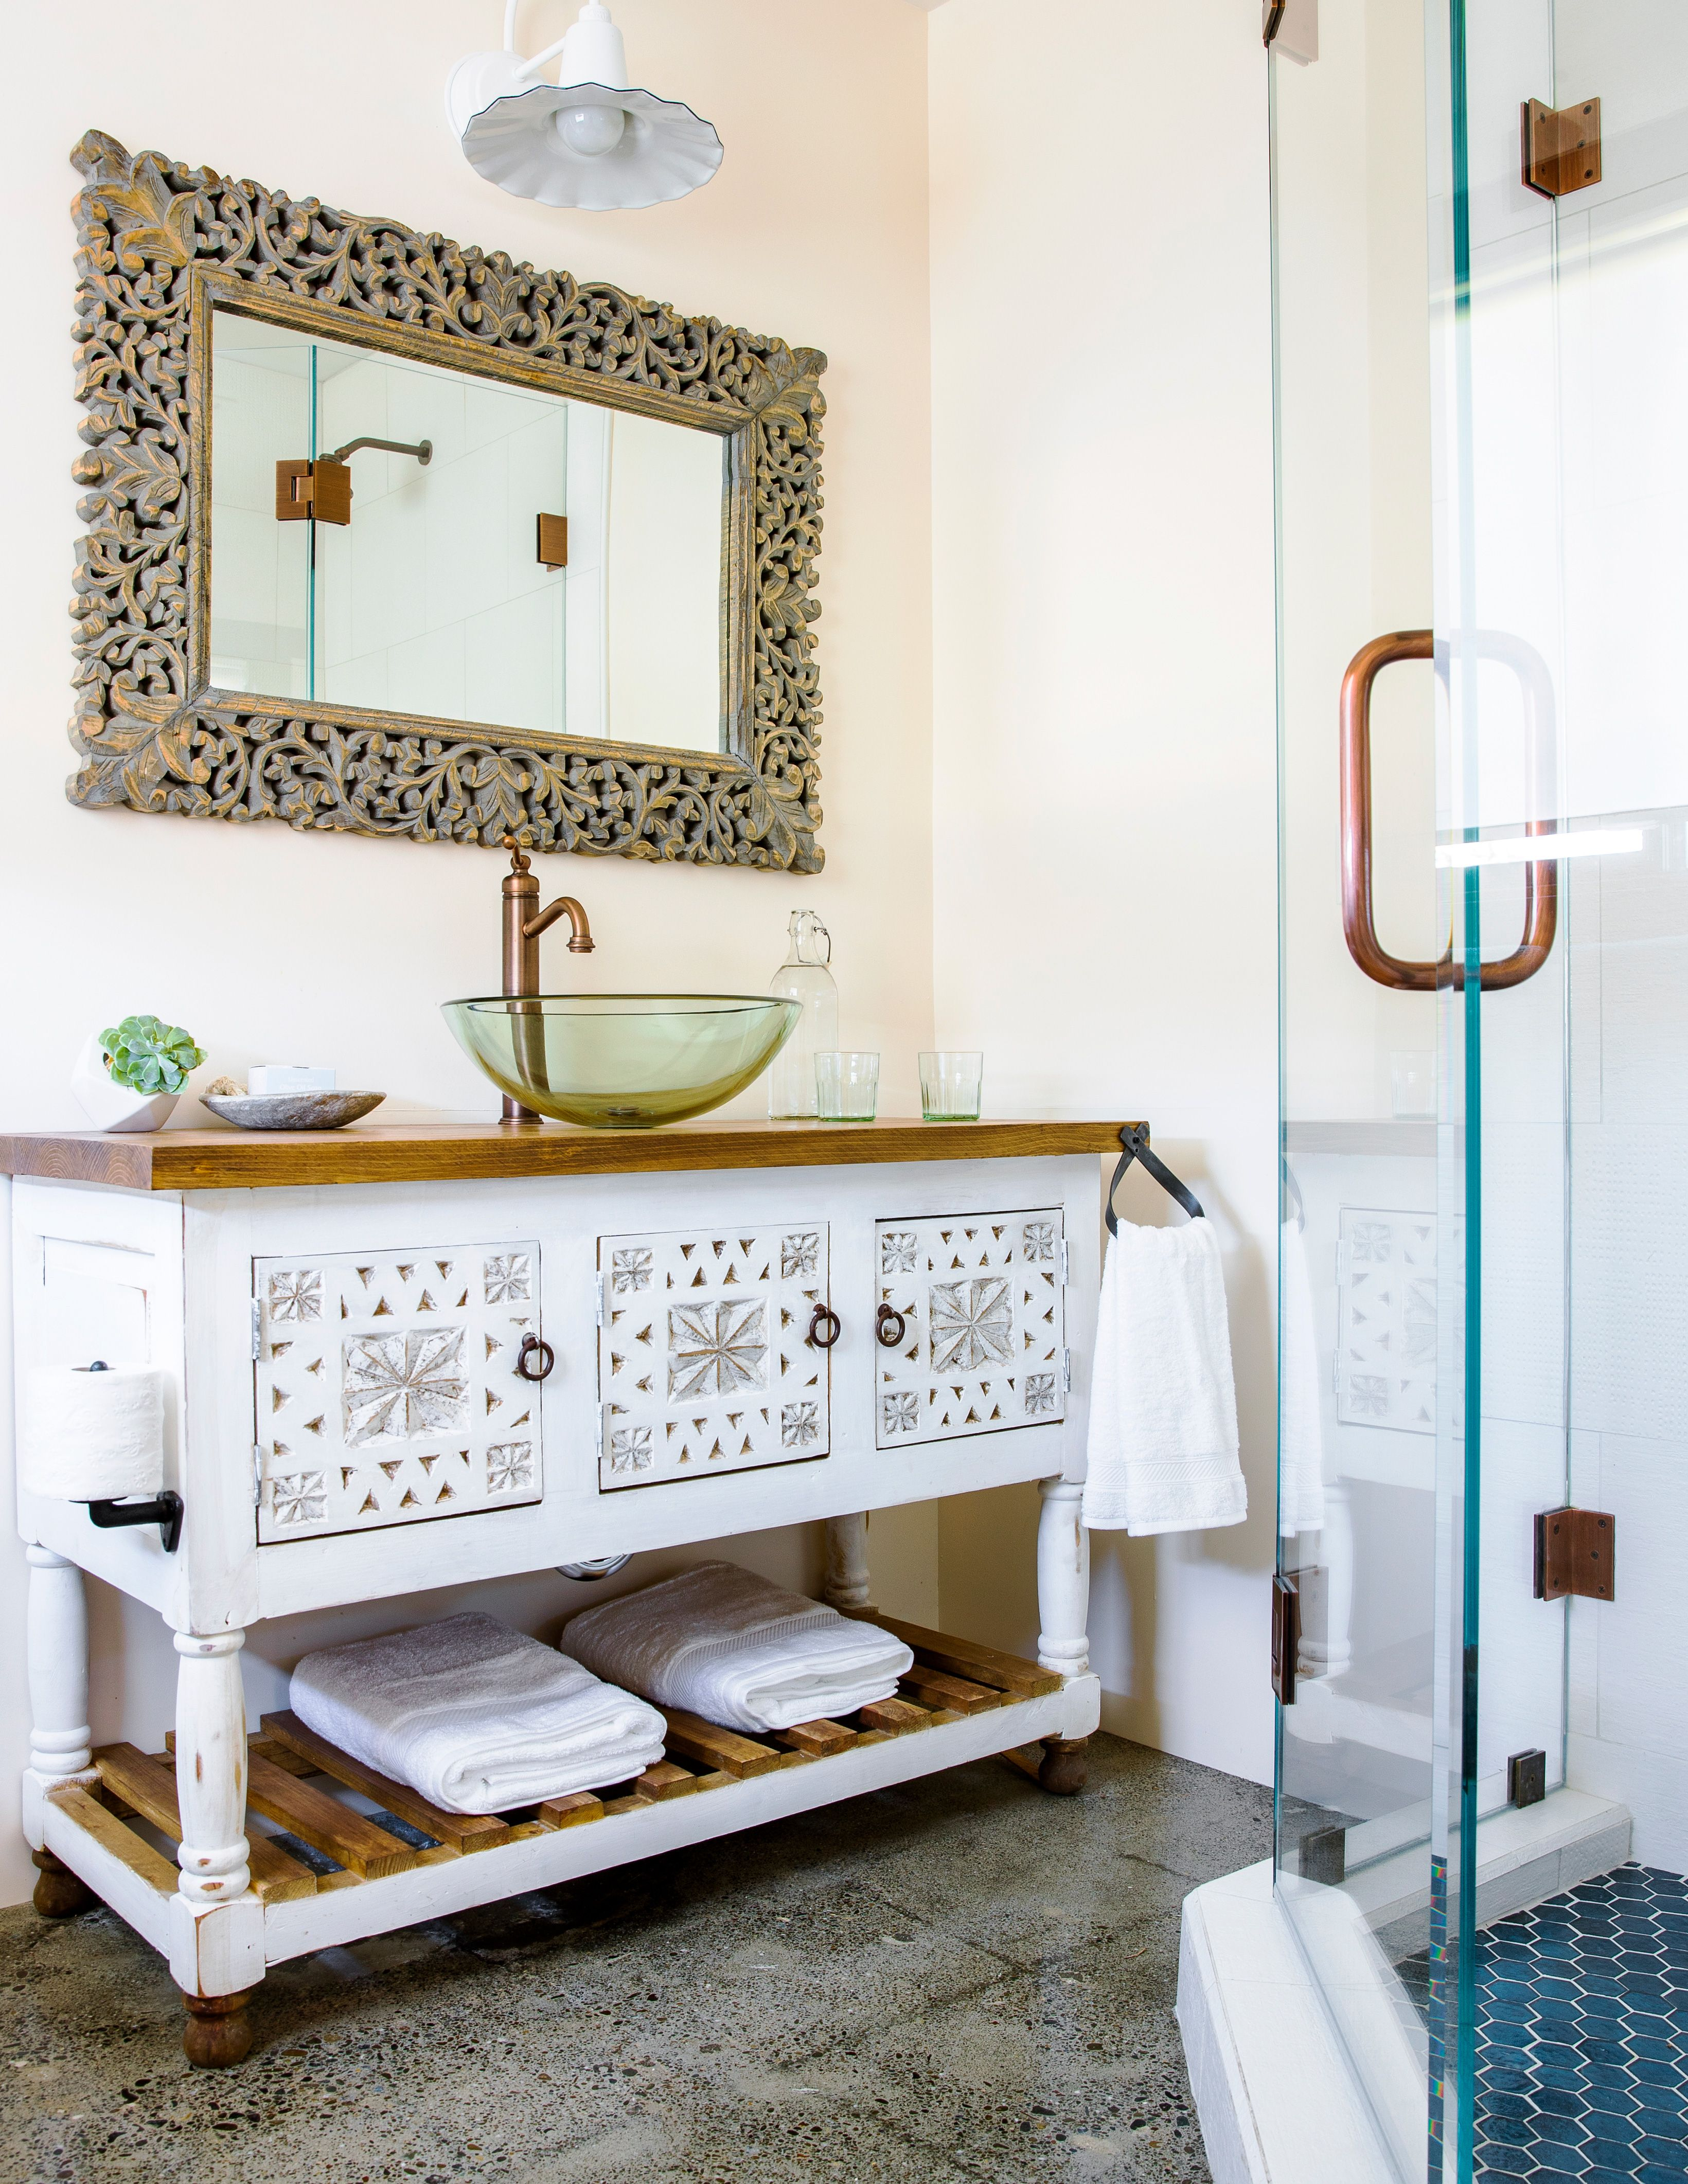 Tour a Stunning Home Makeover with Around-the-World Style | sunset ...